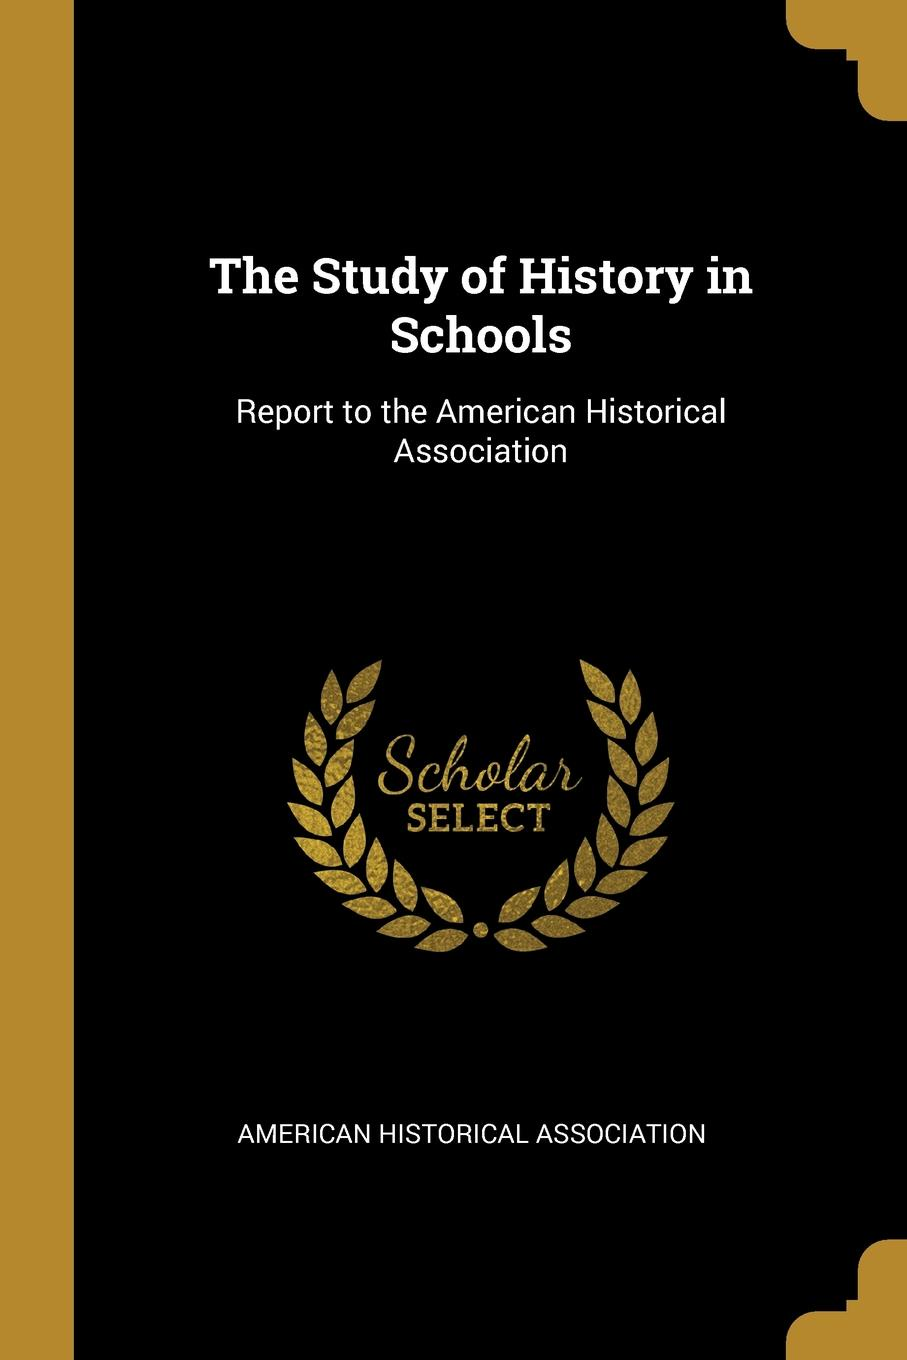 American Historical Association. The Study of History in Schools. Report to the American Historical Association